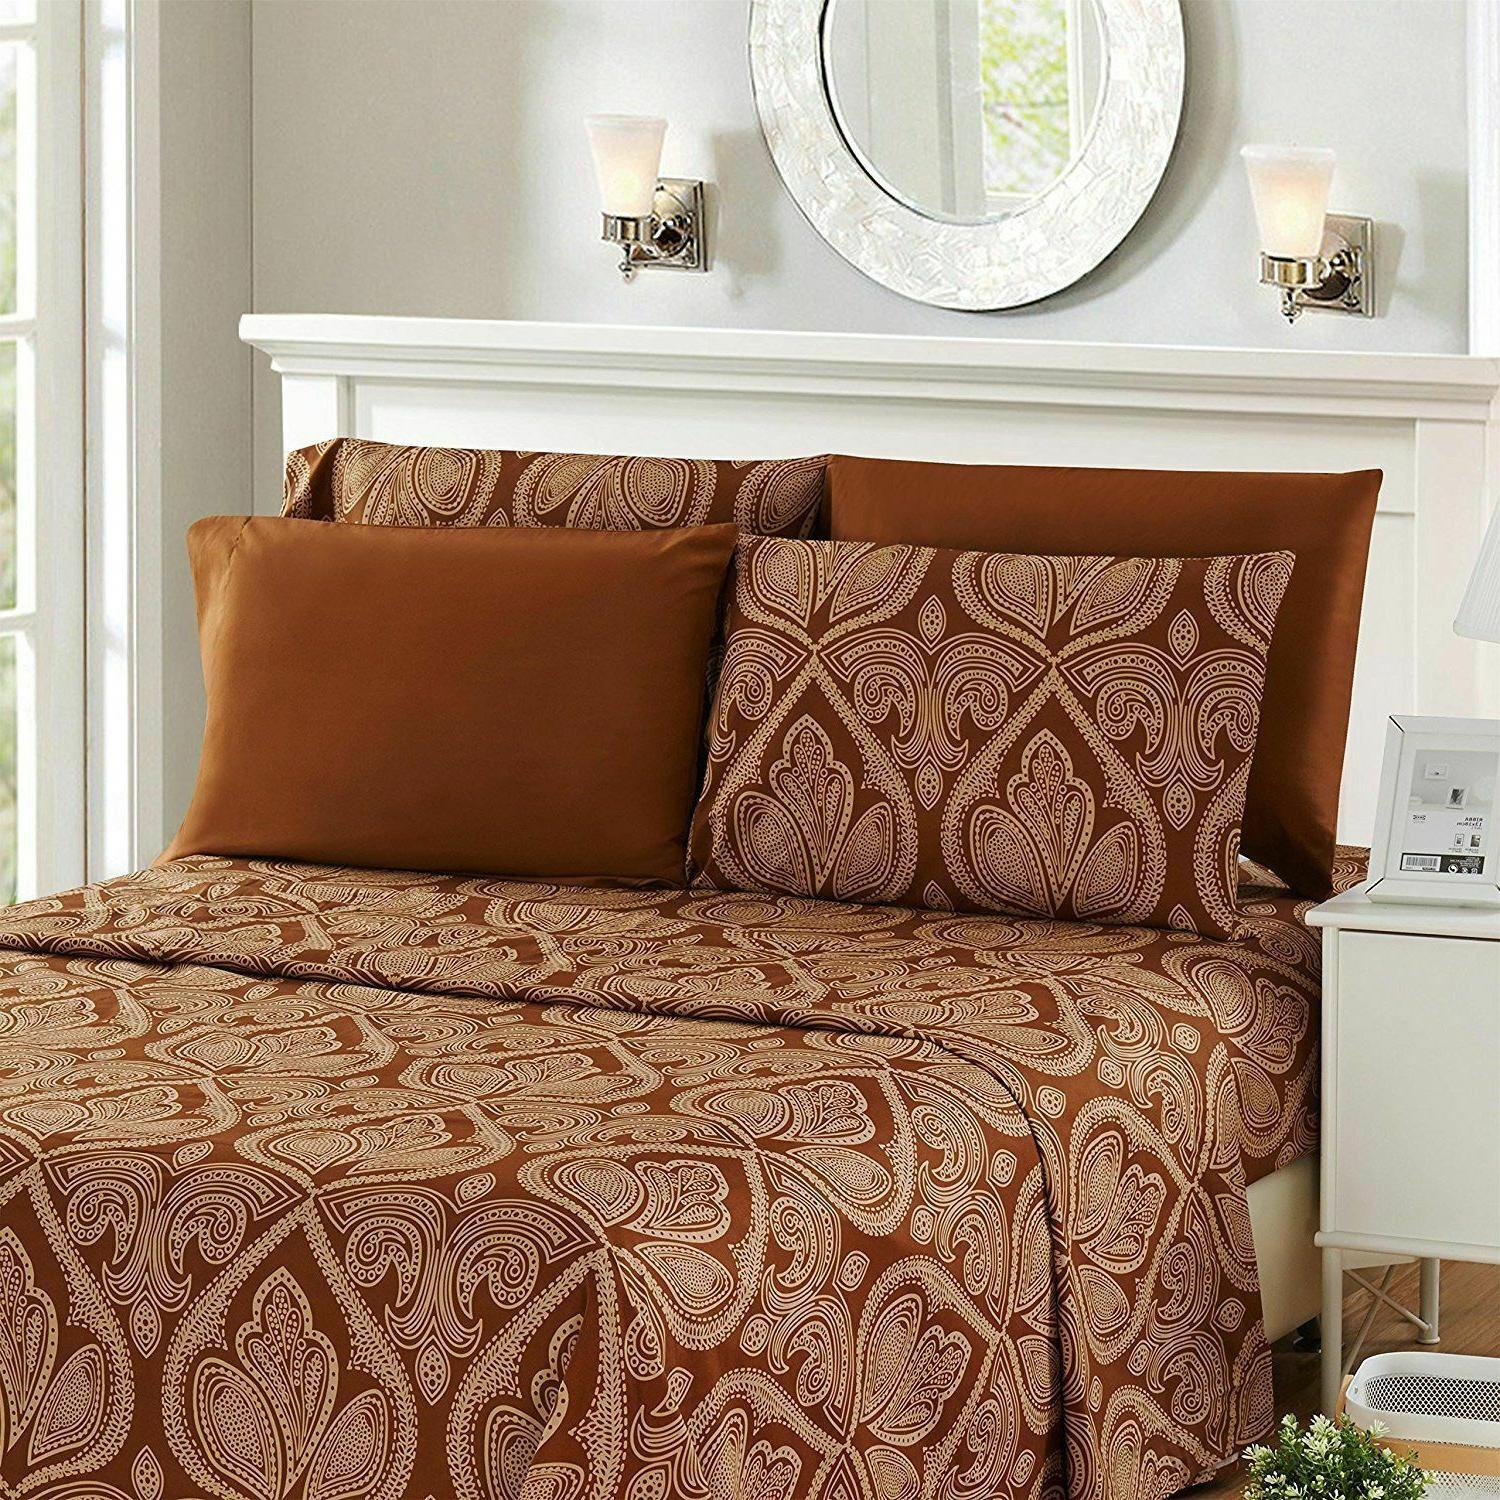 6 Piece Egyptian 1800 Thread Bed Sheets set